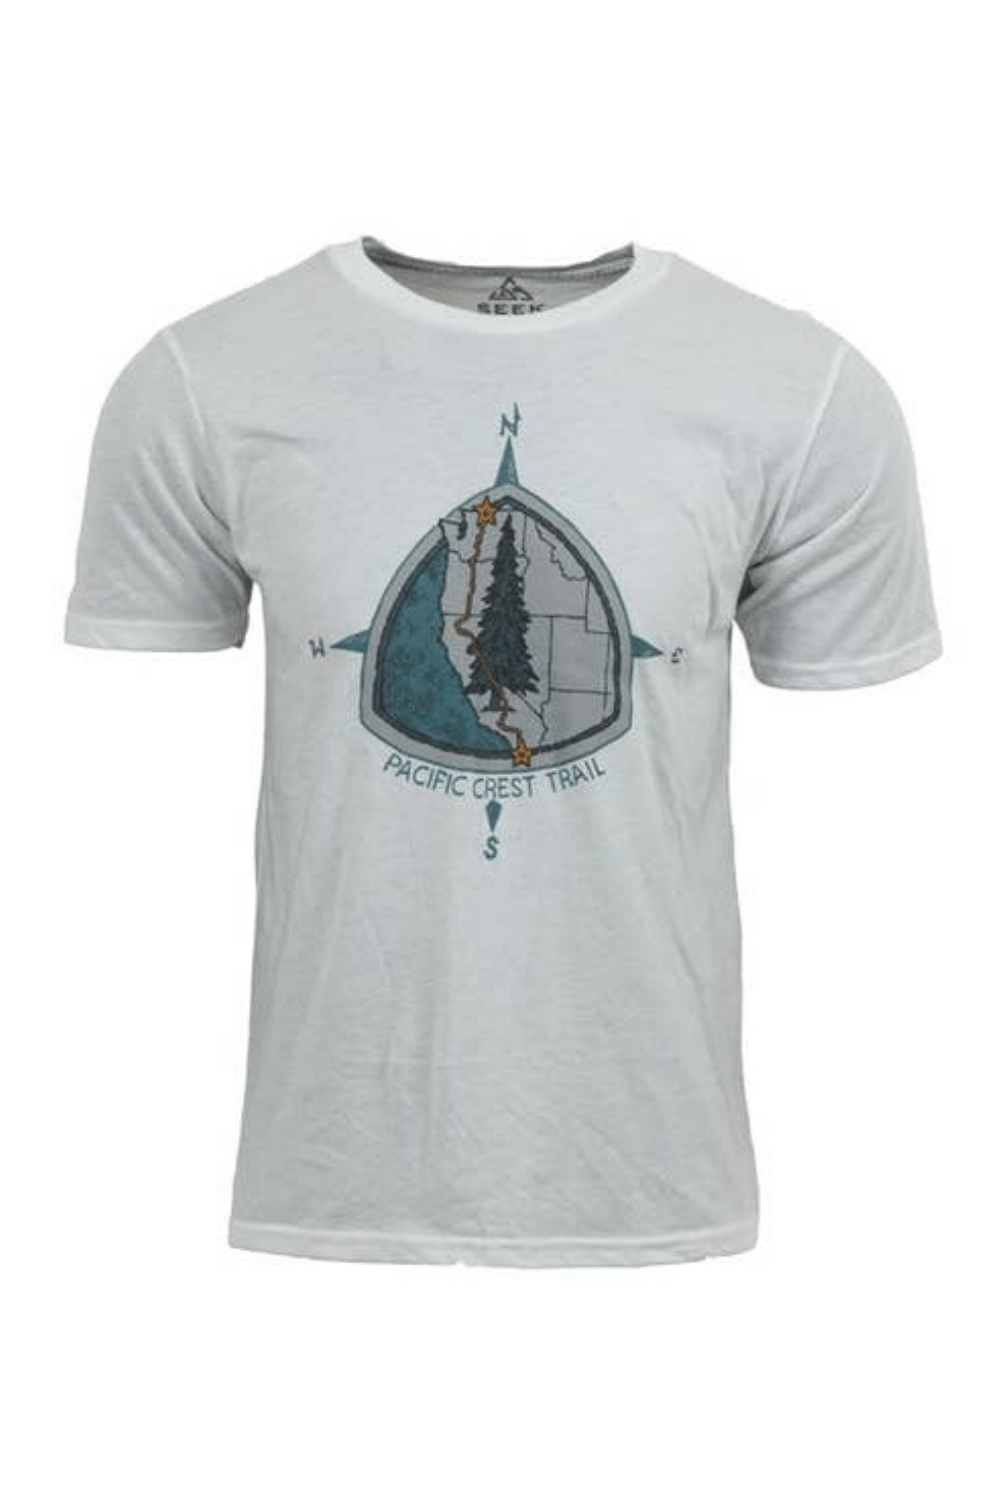 Seek Dry Goods Men's Tees Pacific Crest Trail T-Shirt • Heather Snow